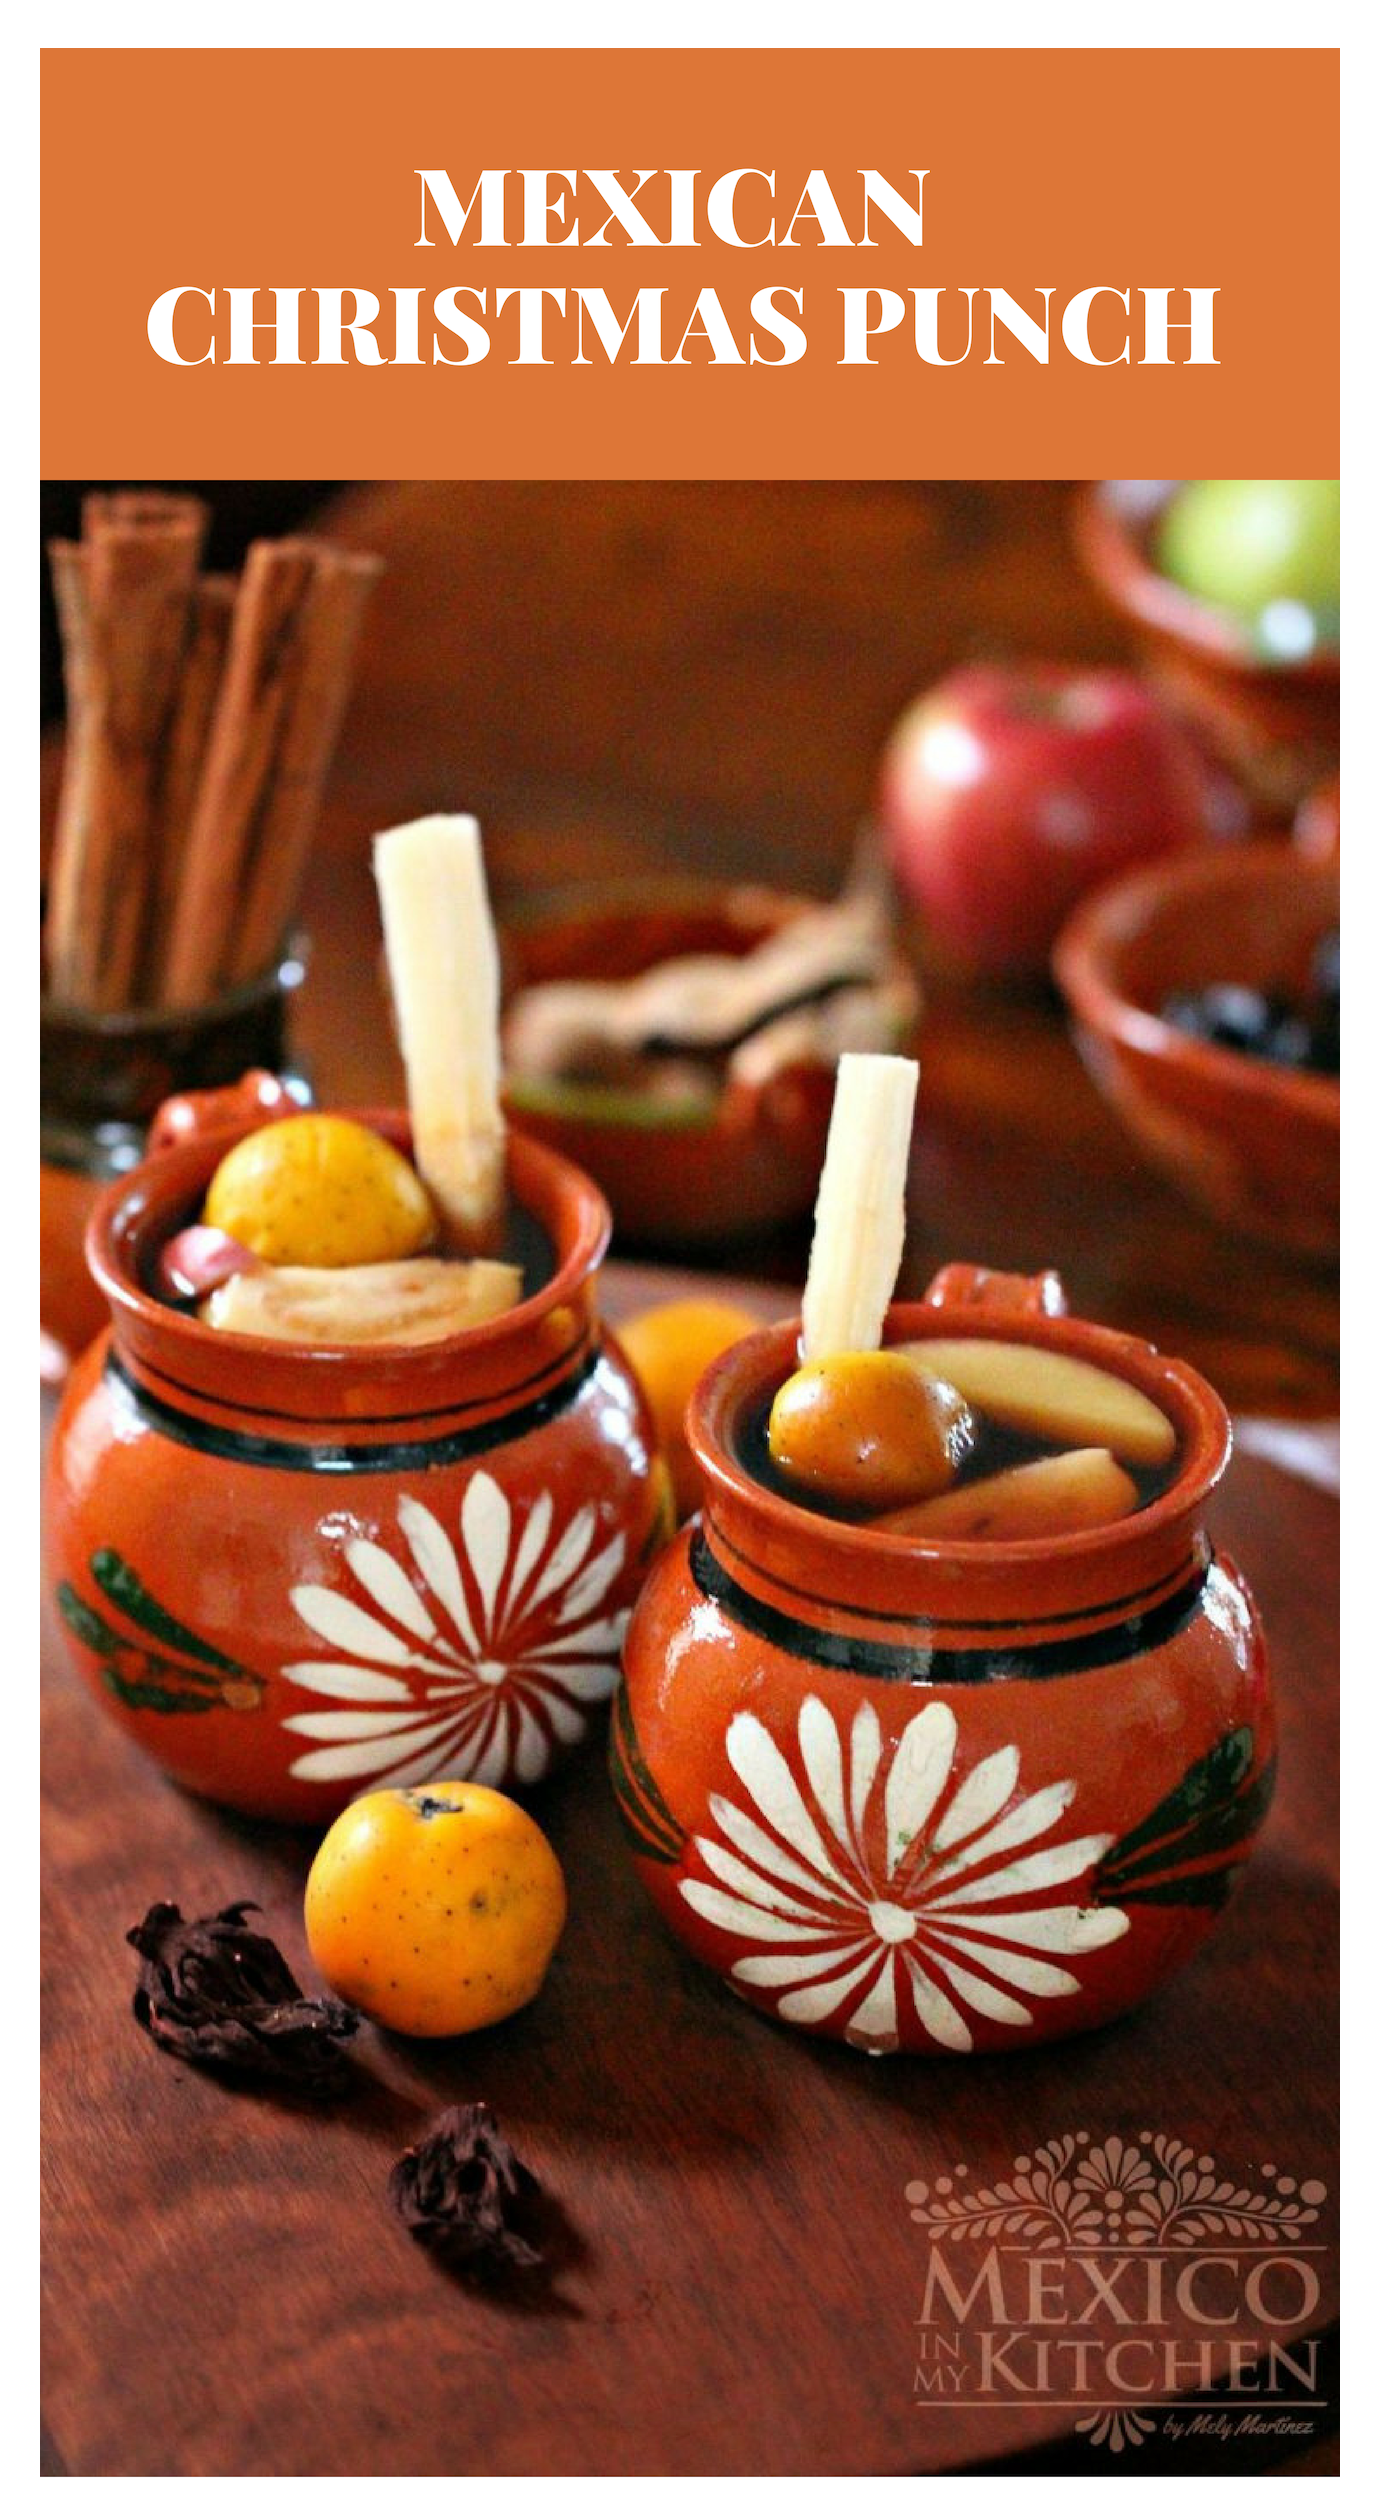 How to make Mexican Cristmas Punch │ Ponche Navideño, is a traditional hot drink during the Christmas Holidays, it is made using water, fresh and dried fruits like tamarind, prunes, hibiscus, sugar cane, cinnamon, and sweetened with Piloncillo. You can serve it with or without alcohol. Mexican Cristmas Punch │#mexicanfood